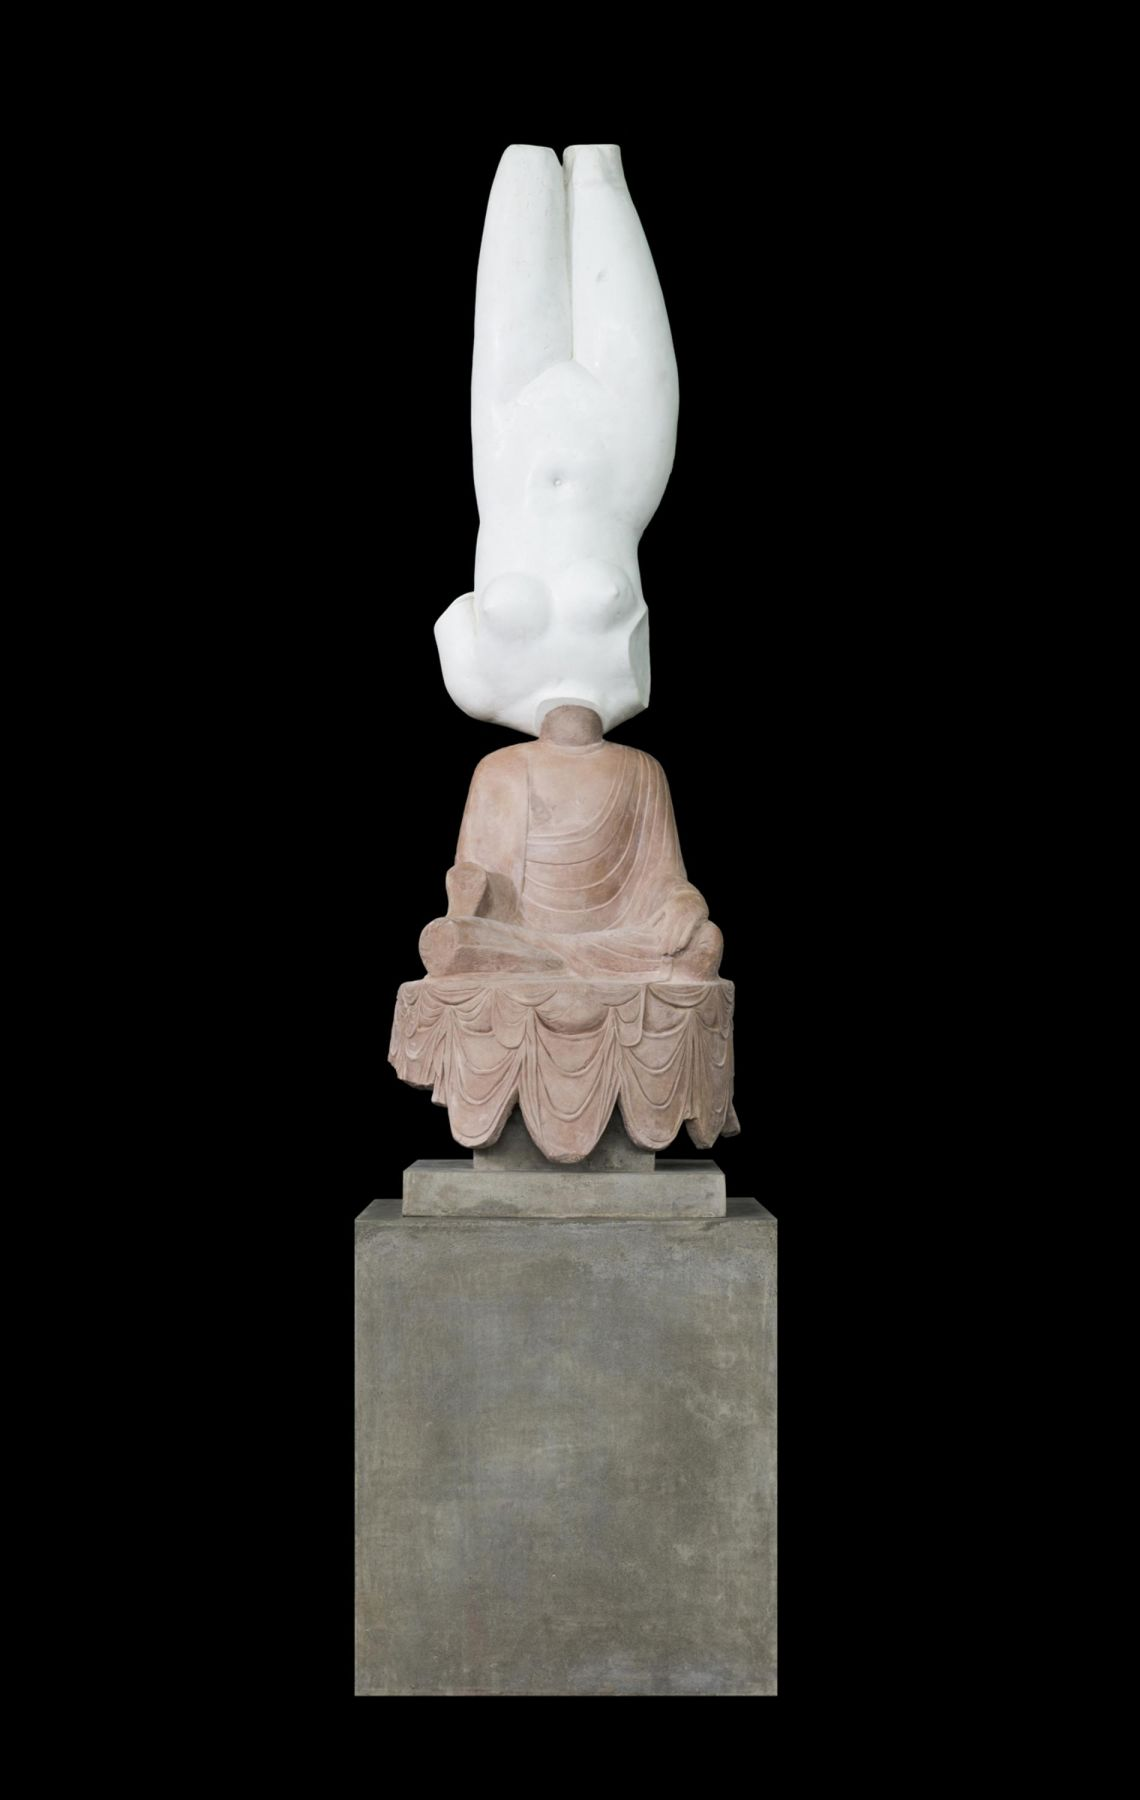 , XU ZHEN Eternity-Aphrodite of Knidos, Tang Dynasty Sitting Buddha, 2014 Glass fiber-reinforced concrete, marble grains, sandstone grains, mineral pigments, steel 139.7 x 35.8 x 35.8 inches (355 x 91 x 91 cm) Edition of 3 Image courtesy of James Cohan Gallery, New York / Shanghai